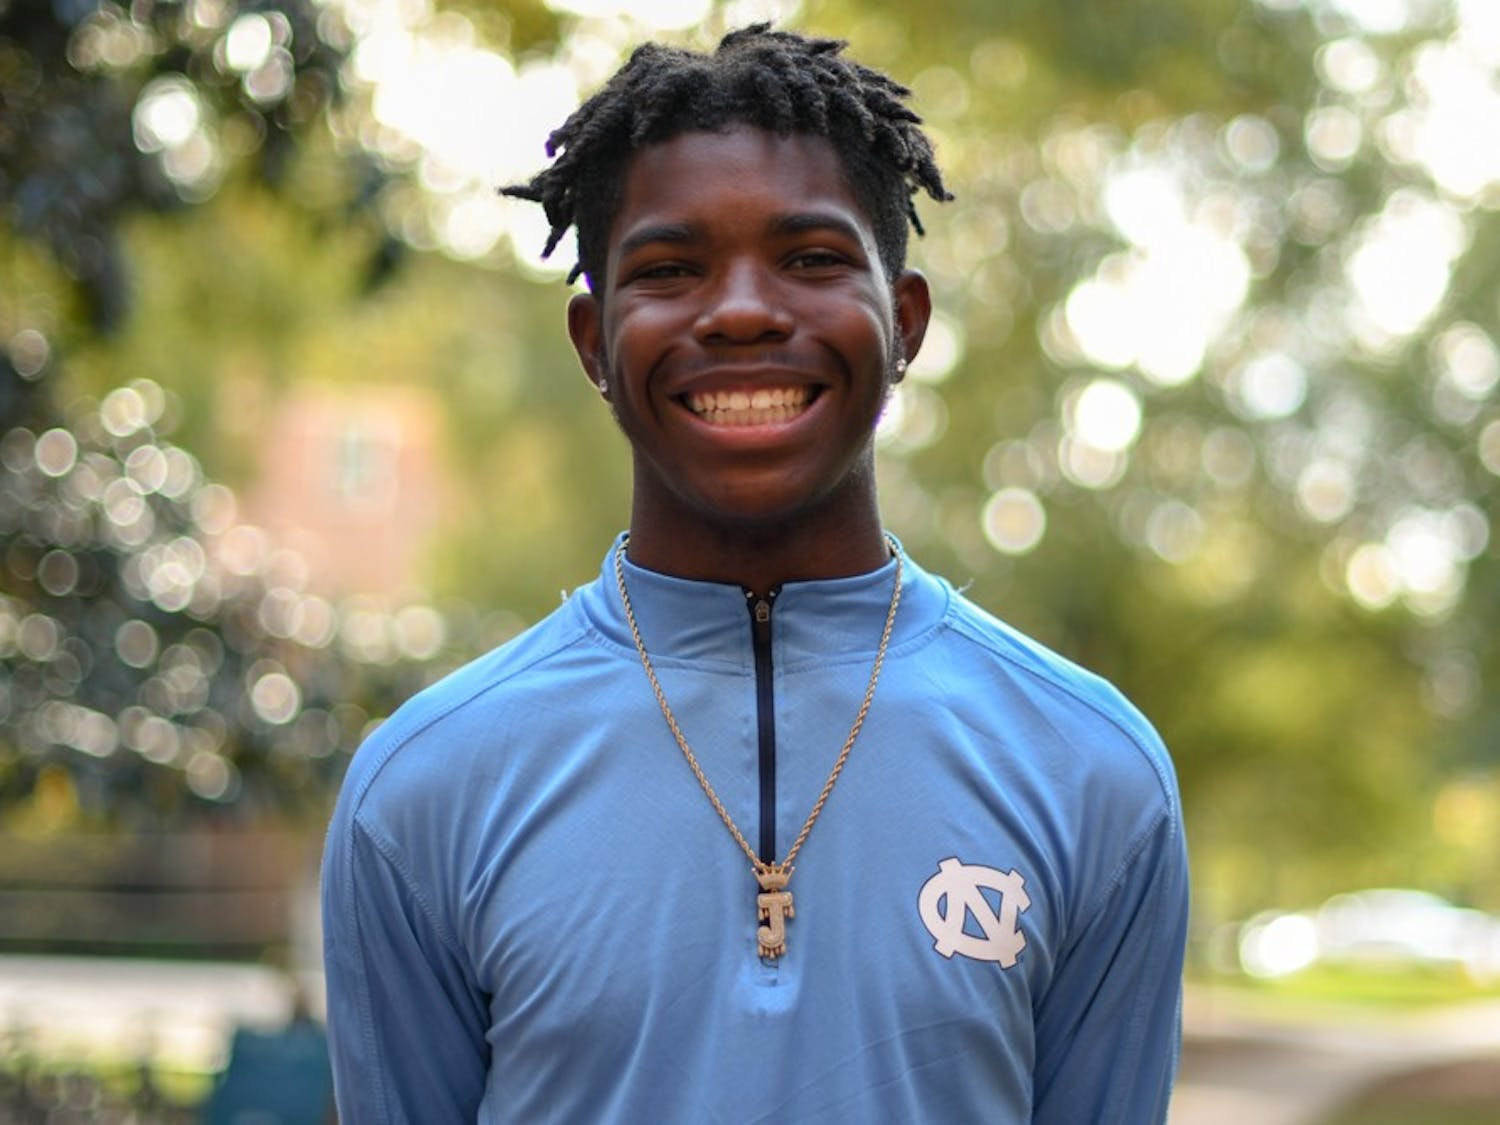 Jamal Smith, a first year undergraduate student at UNC, discusses how Project Uplift is special to him. Smith says the sense of community that he felt at Project Uplift, and the friendships he made were the reason why he chose UNC over Duke.